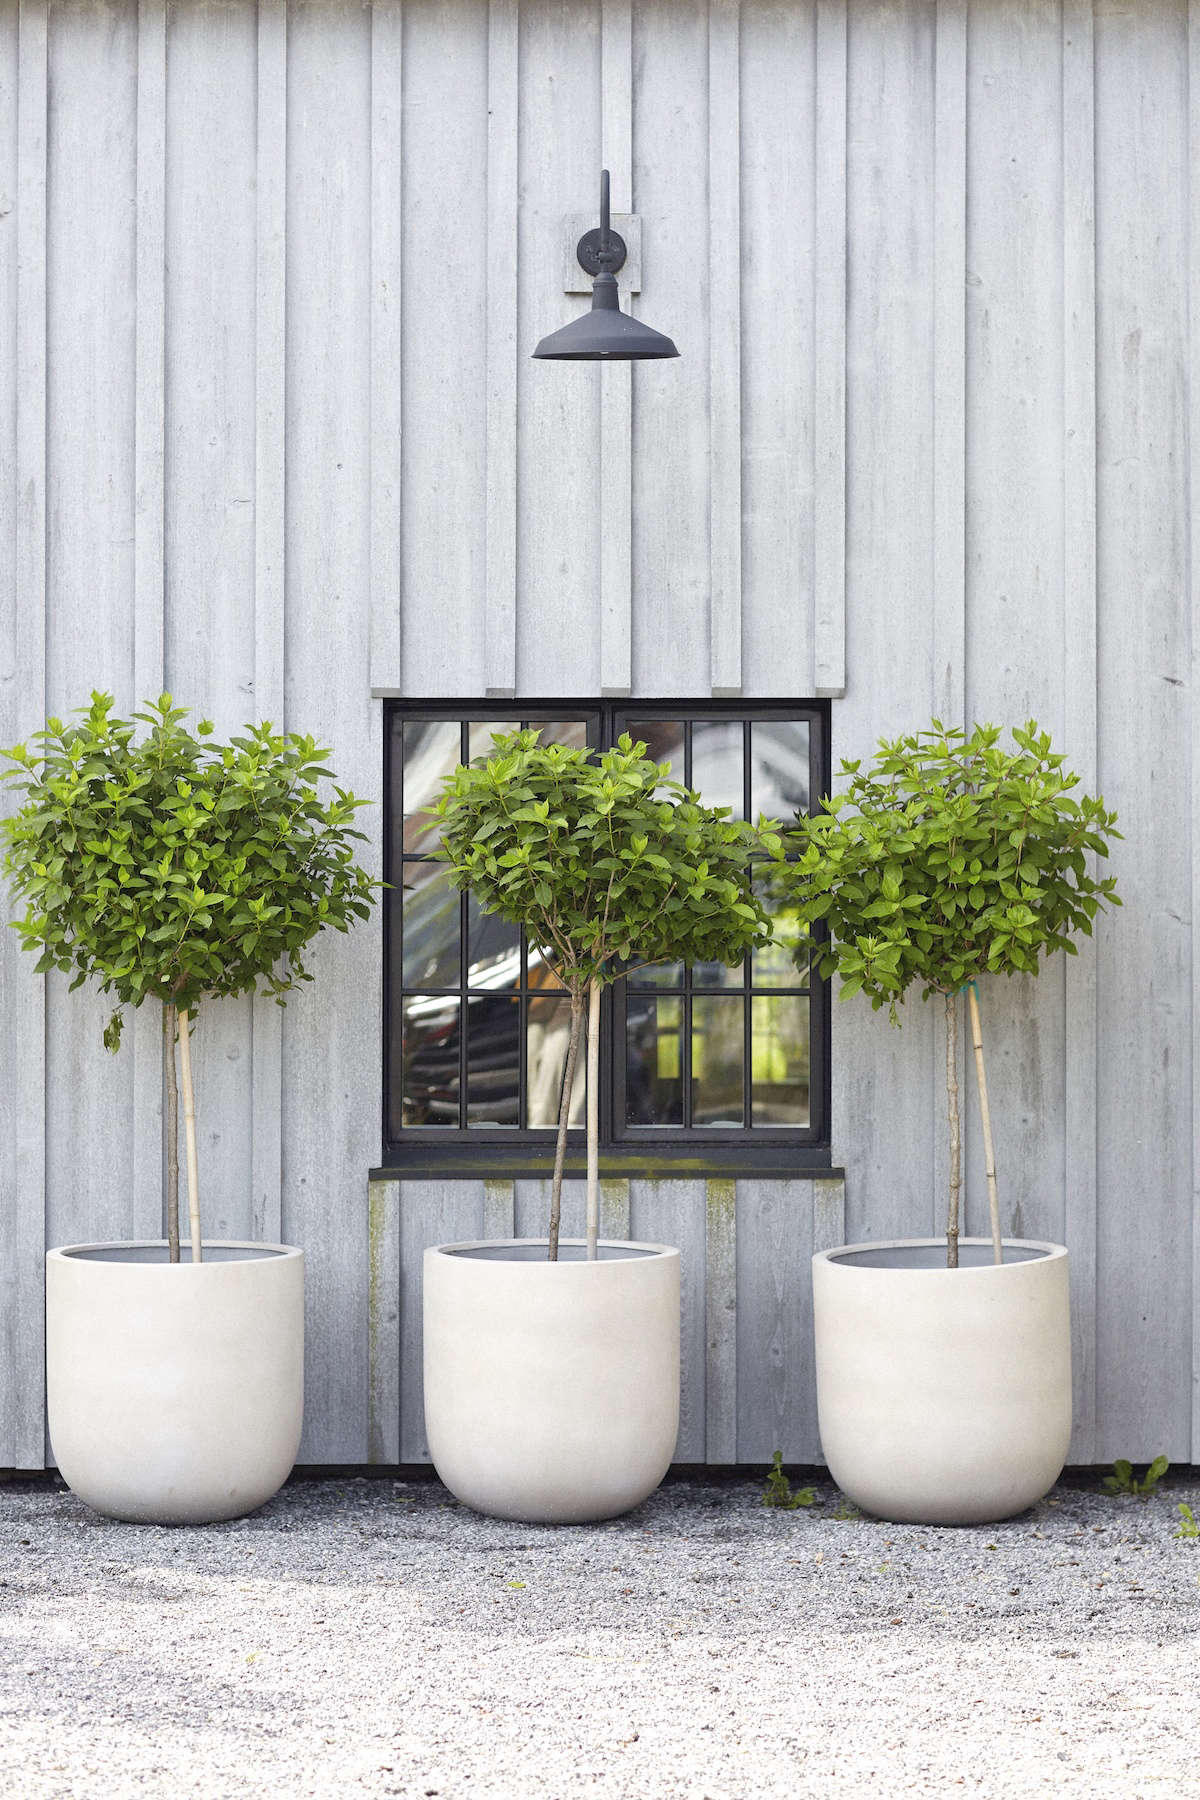 A row of simple oversized concrete planters in front of the shop.